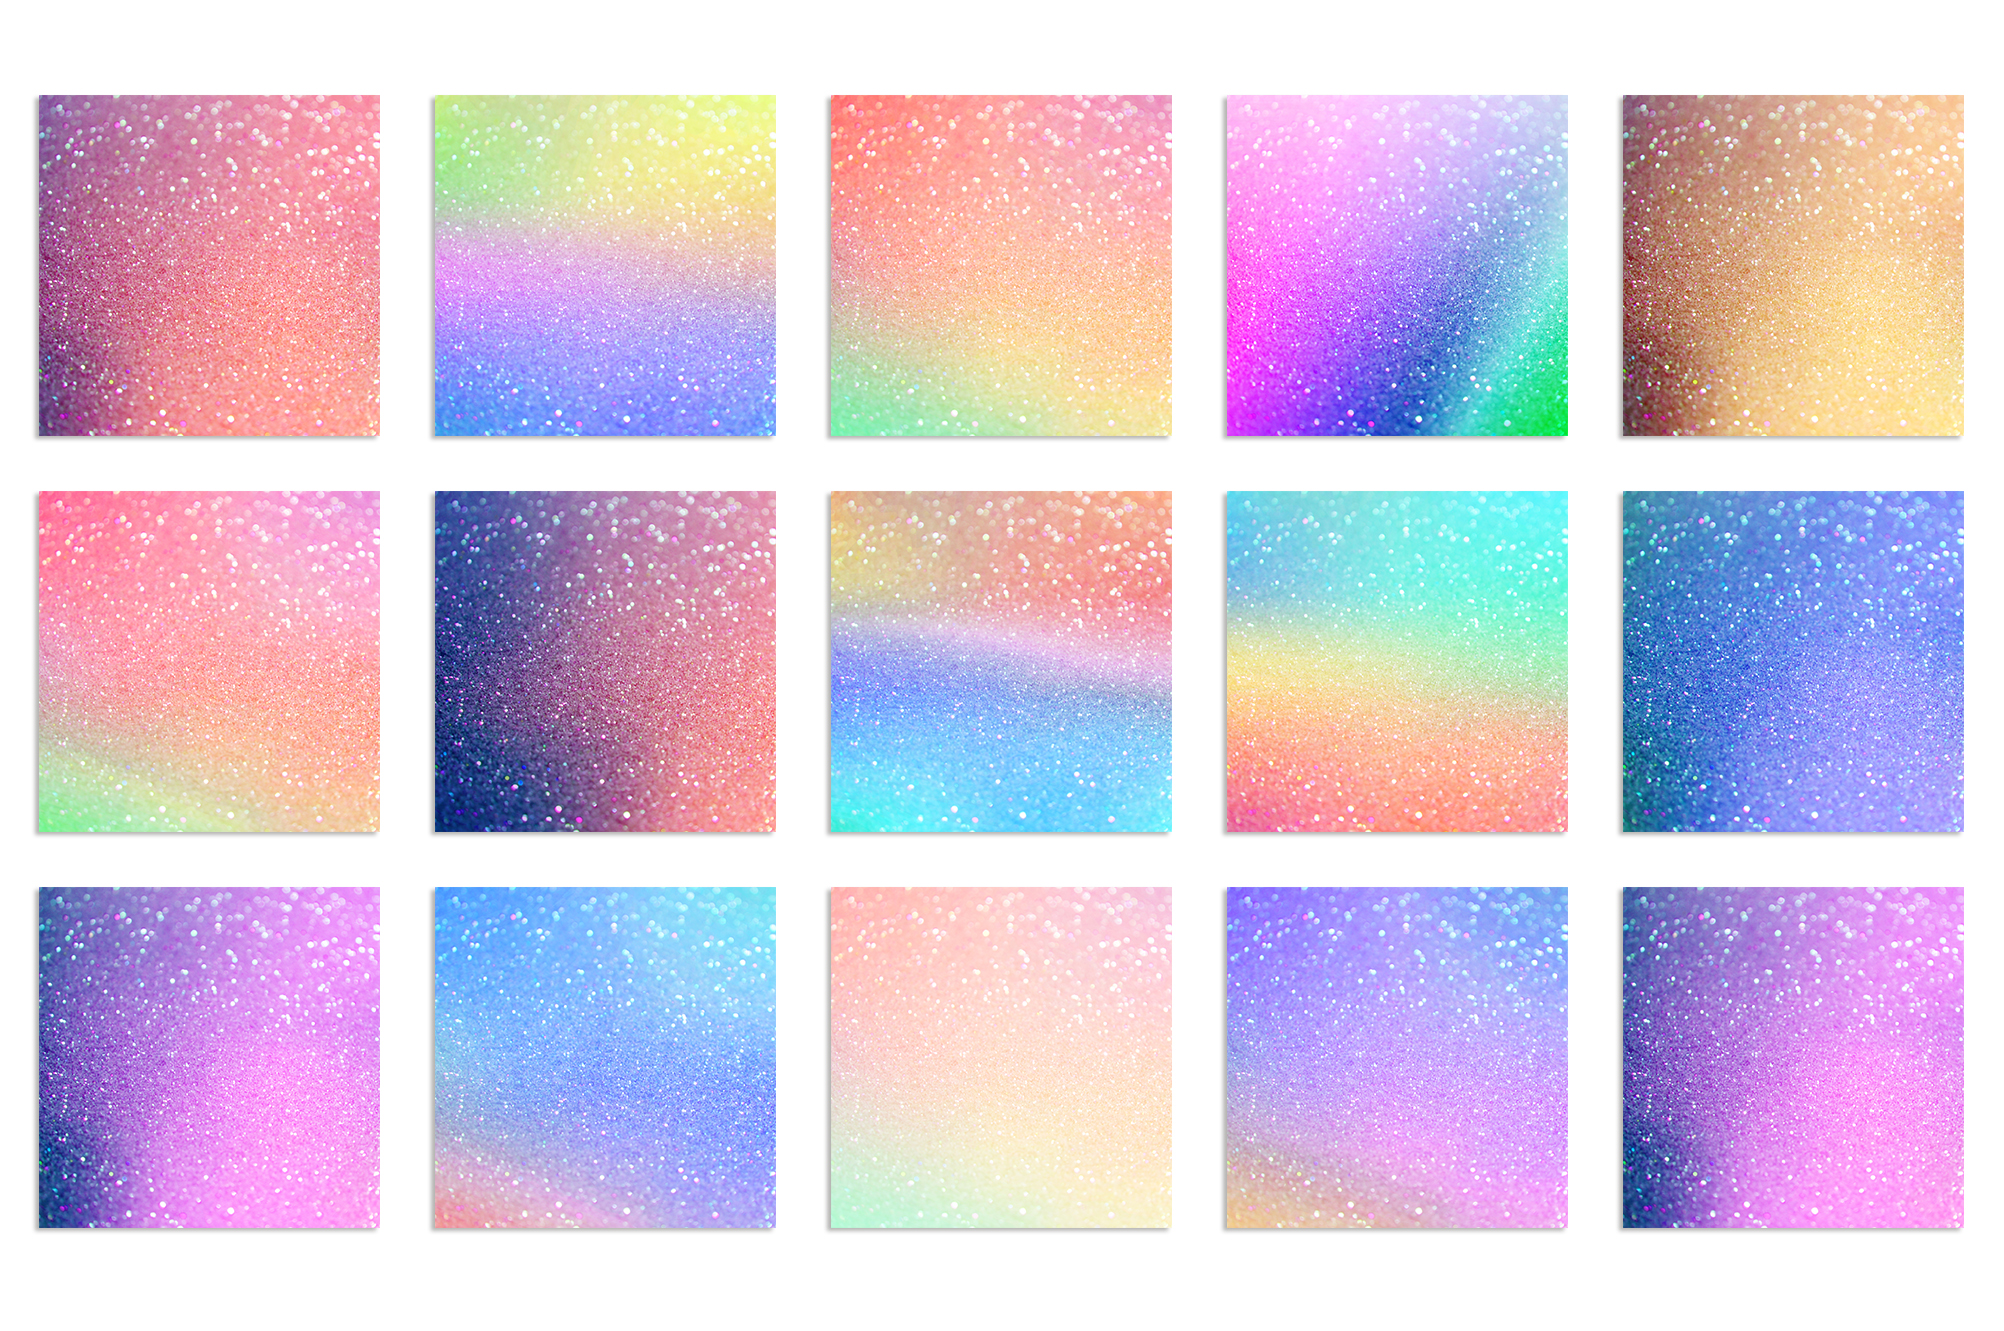 Iridescent Marble and Glitter Textures BUNDLE example image 25